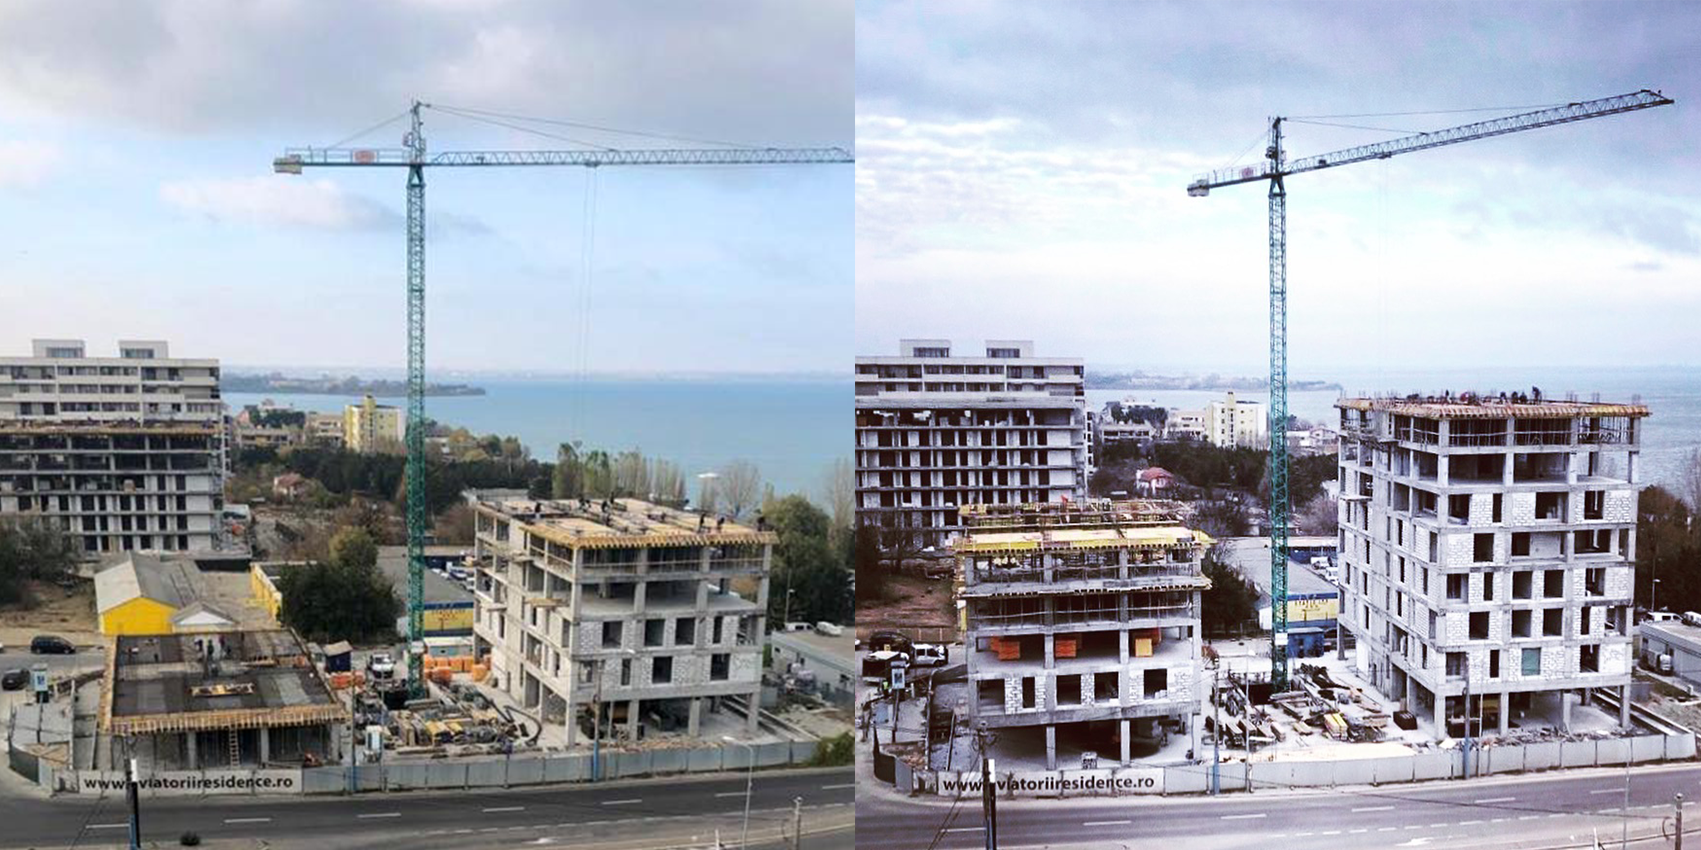 AVIATORII RESIDENCE construction in progress - Construction site evolution between November 2018 and March 2019.More details coming soon!